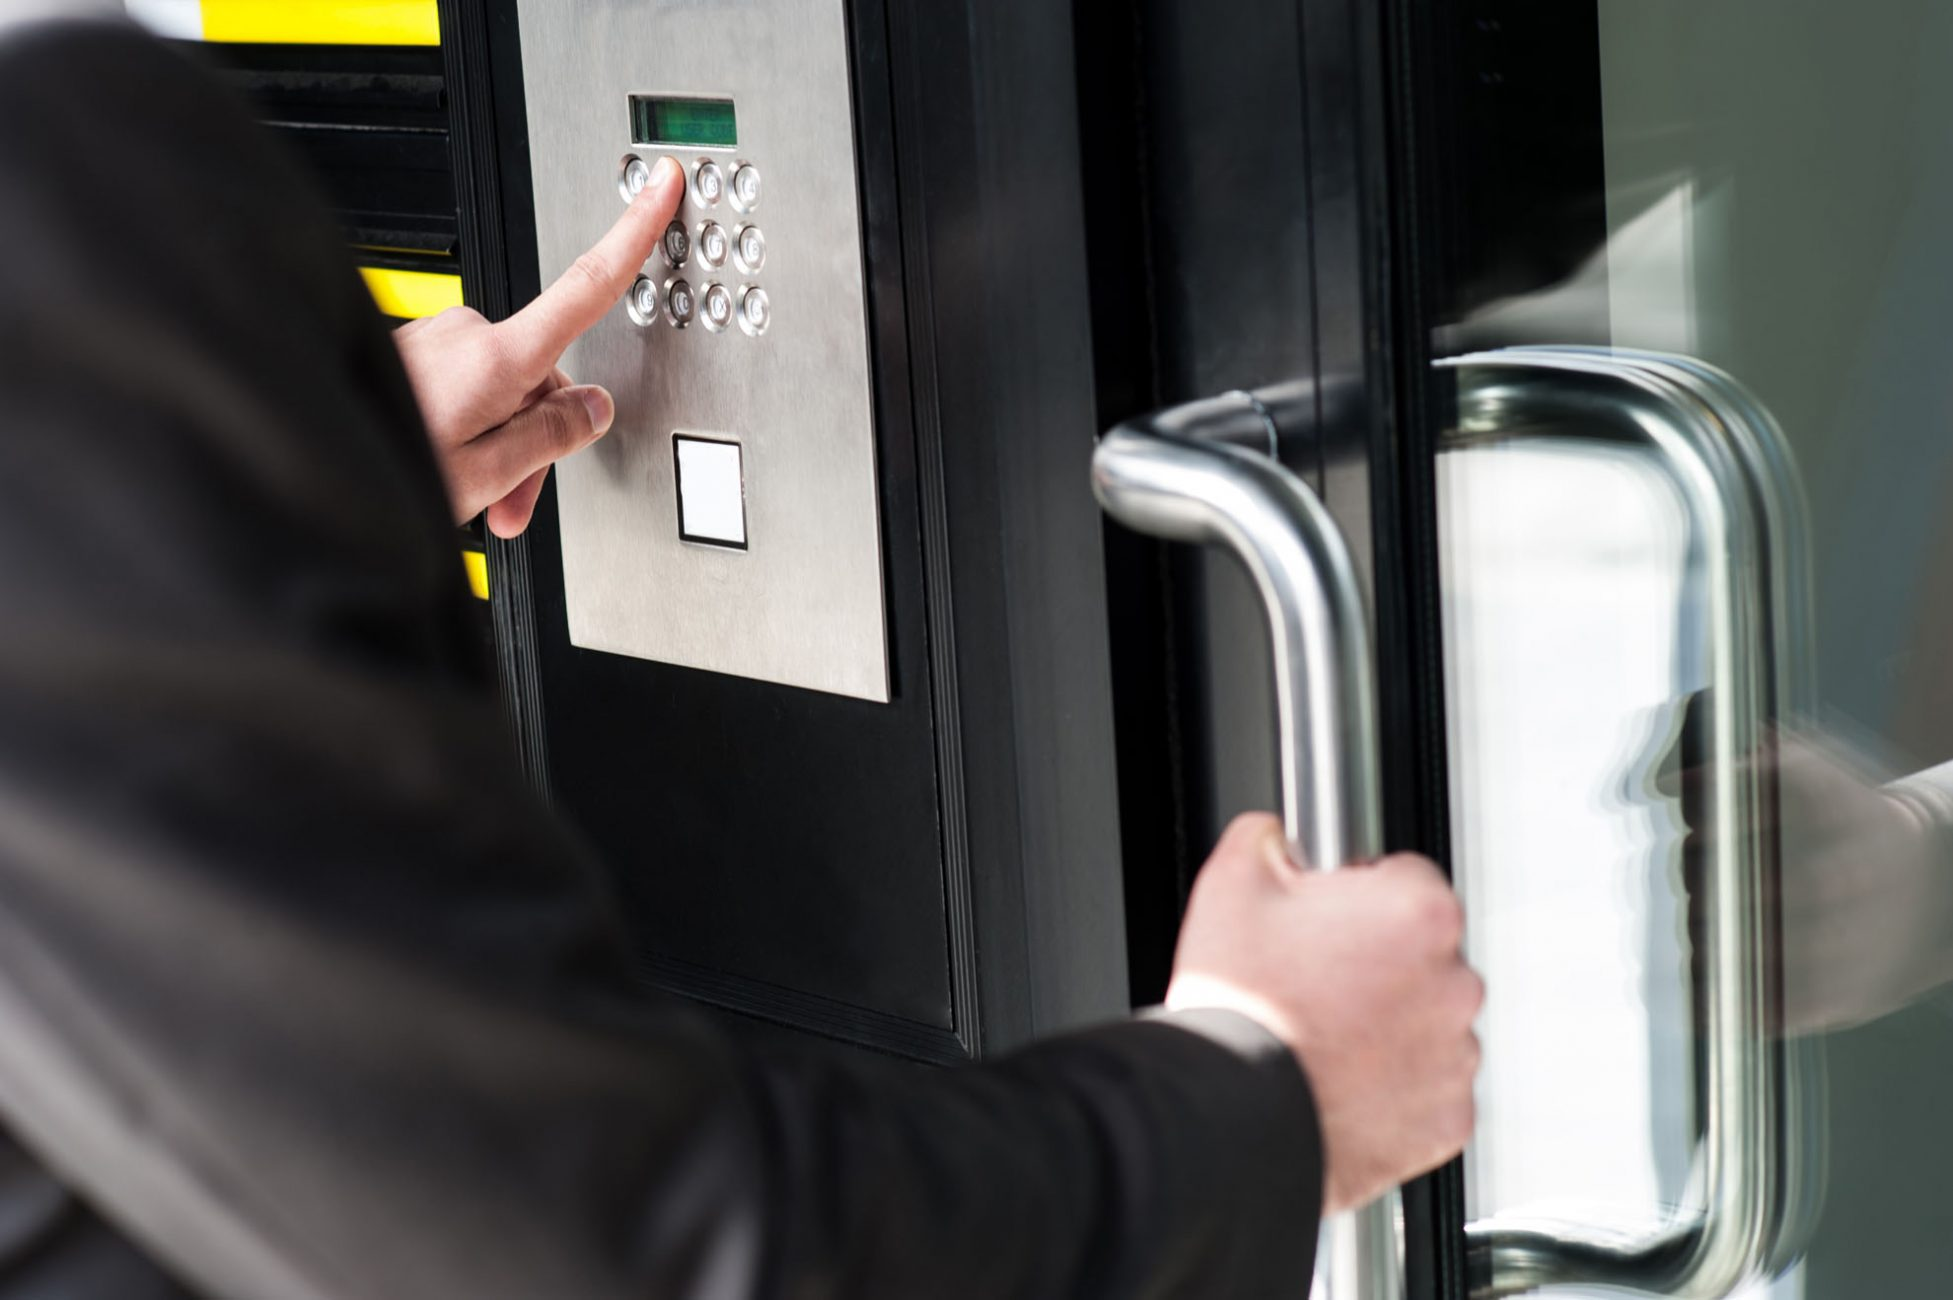 Door Access Control | Digital Locks | High Security Locks| GB Locking Systems